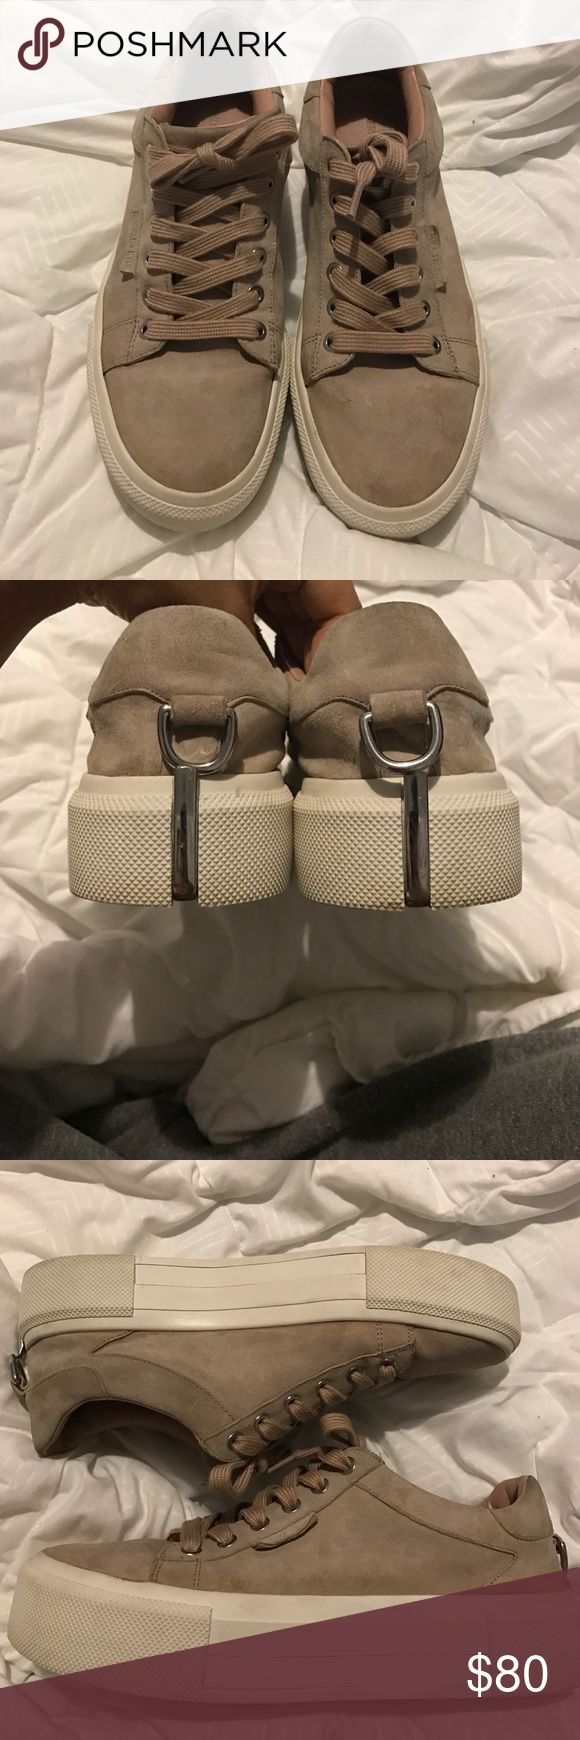 Kendall and Kylie platform sneaker Worn but still in great condition dusty rose color. I do not have the original box but will send in shoe box. Platform sneaker Kendall & Kylie Shoes